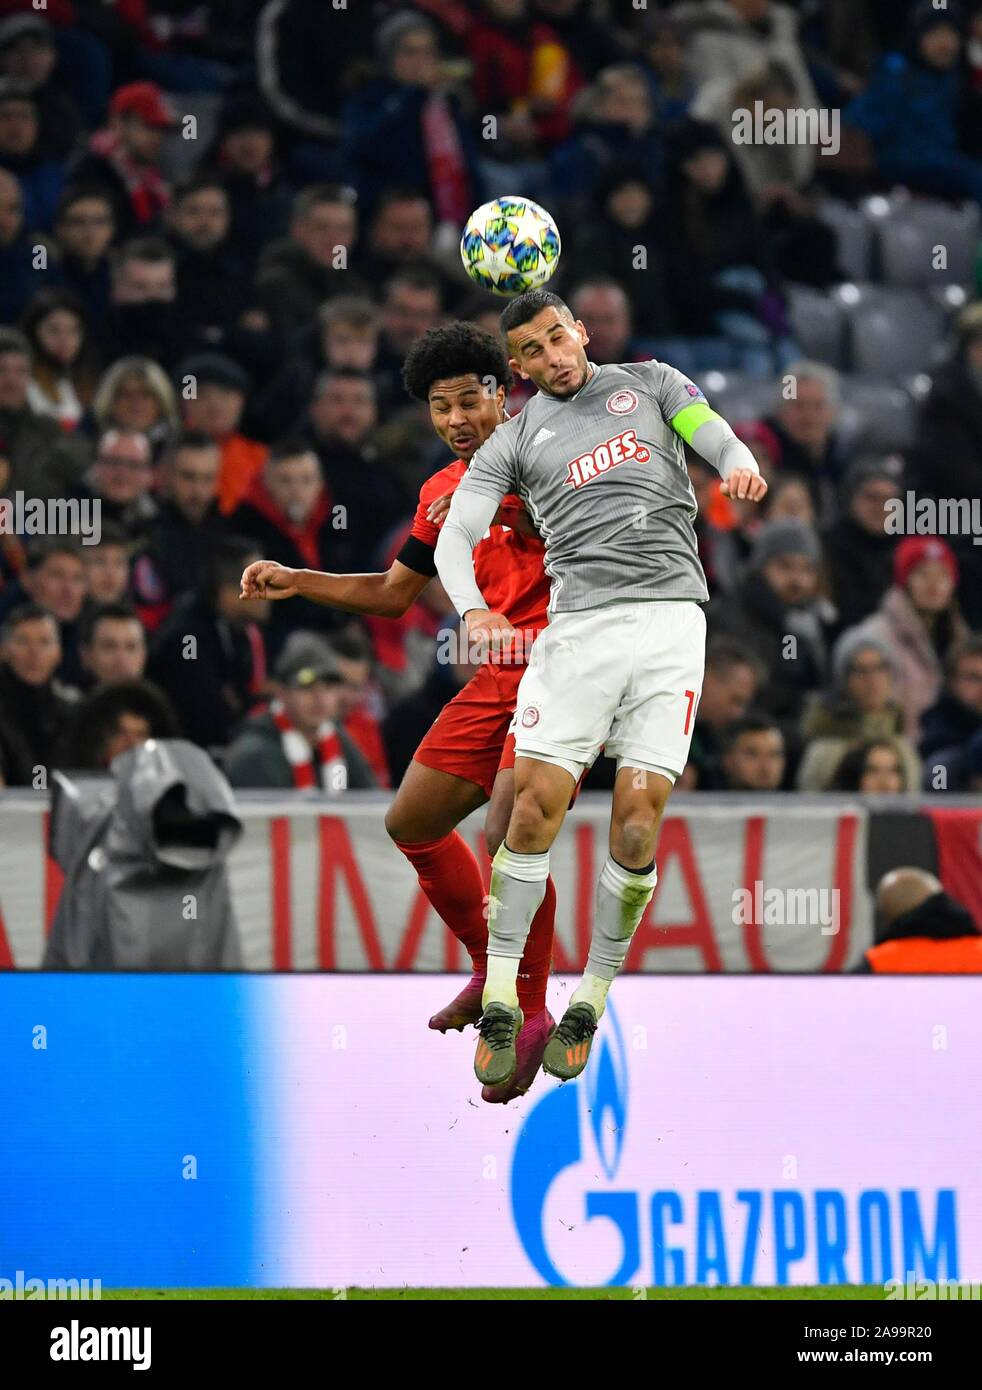 header-duel-duel-action-serge-gnabry-fc-